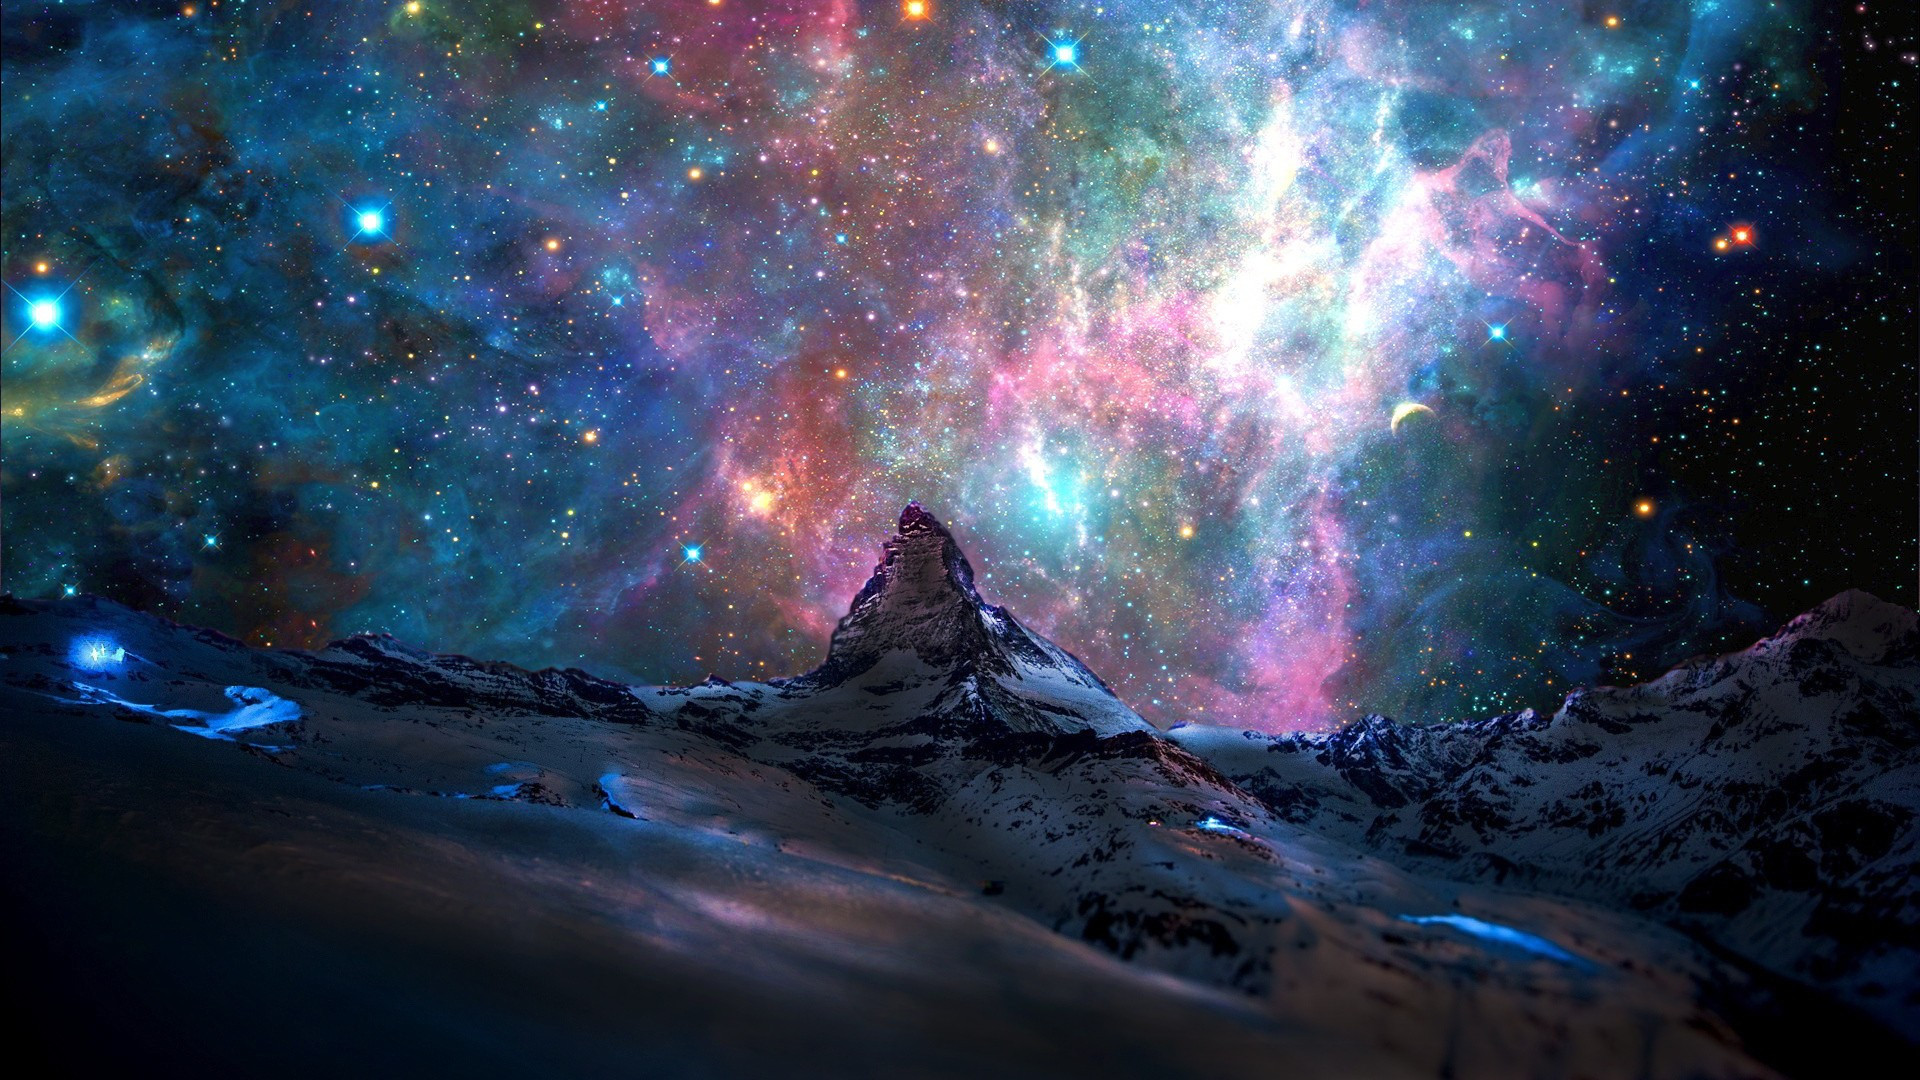 intense backgrounds | Love backgrounds 1 | beauty in photography | Pinterest